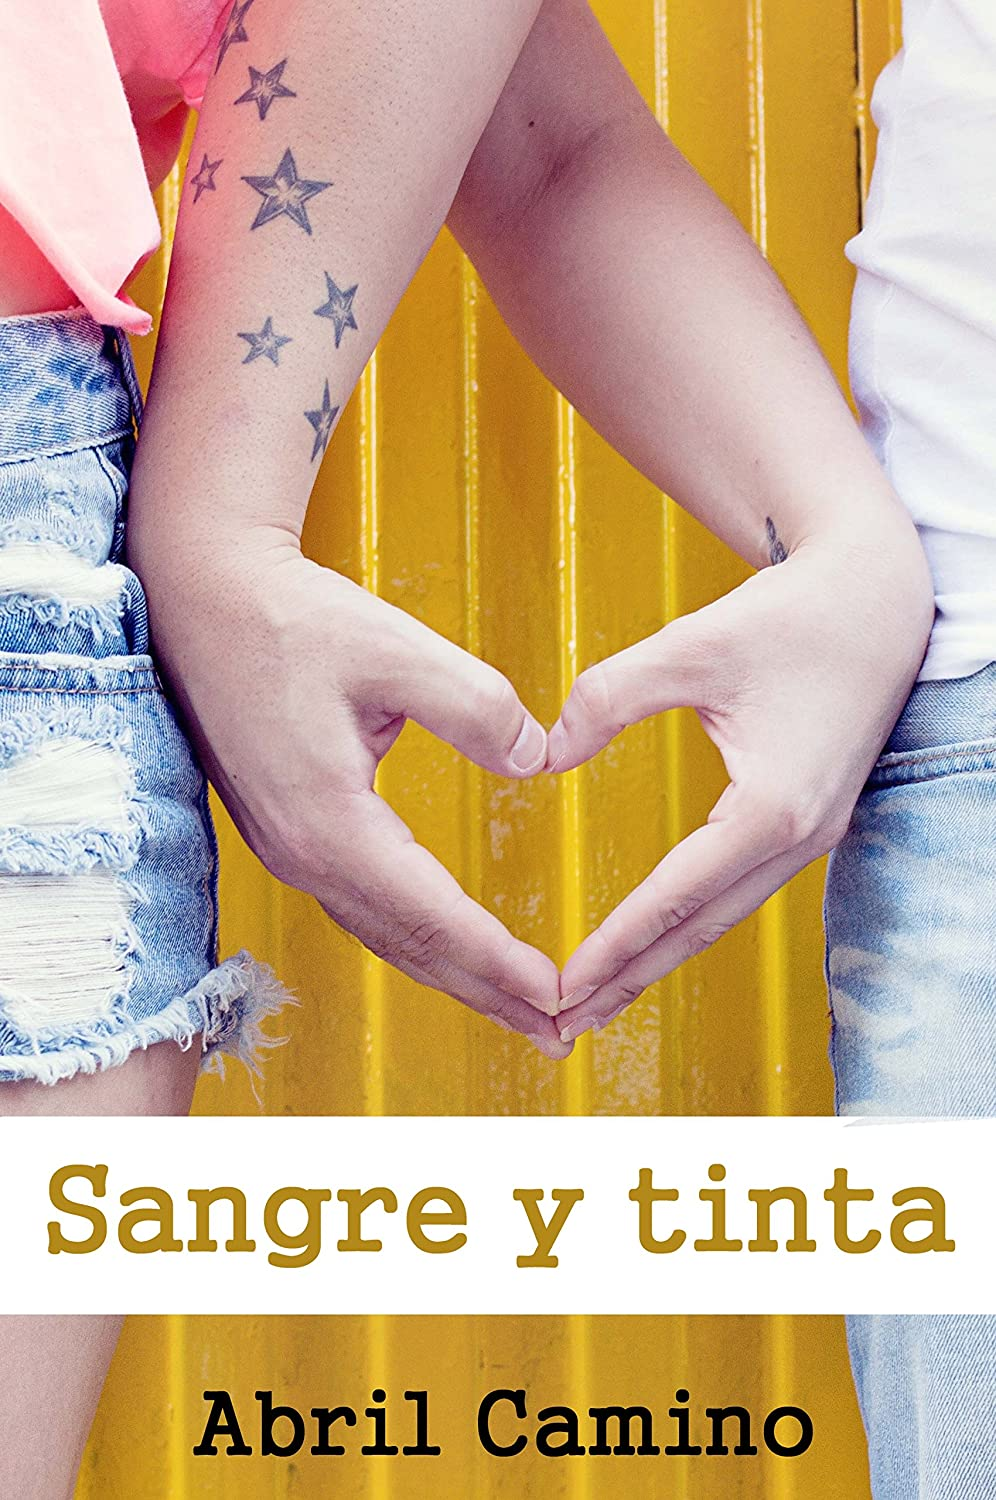 Sangre y tinta eBook: Camino, Abril: Amazon.es: Tienda Kindle